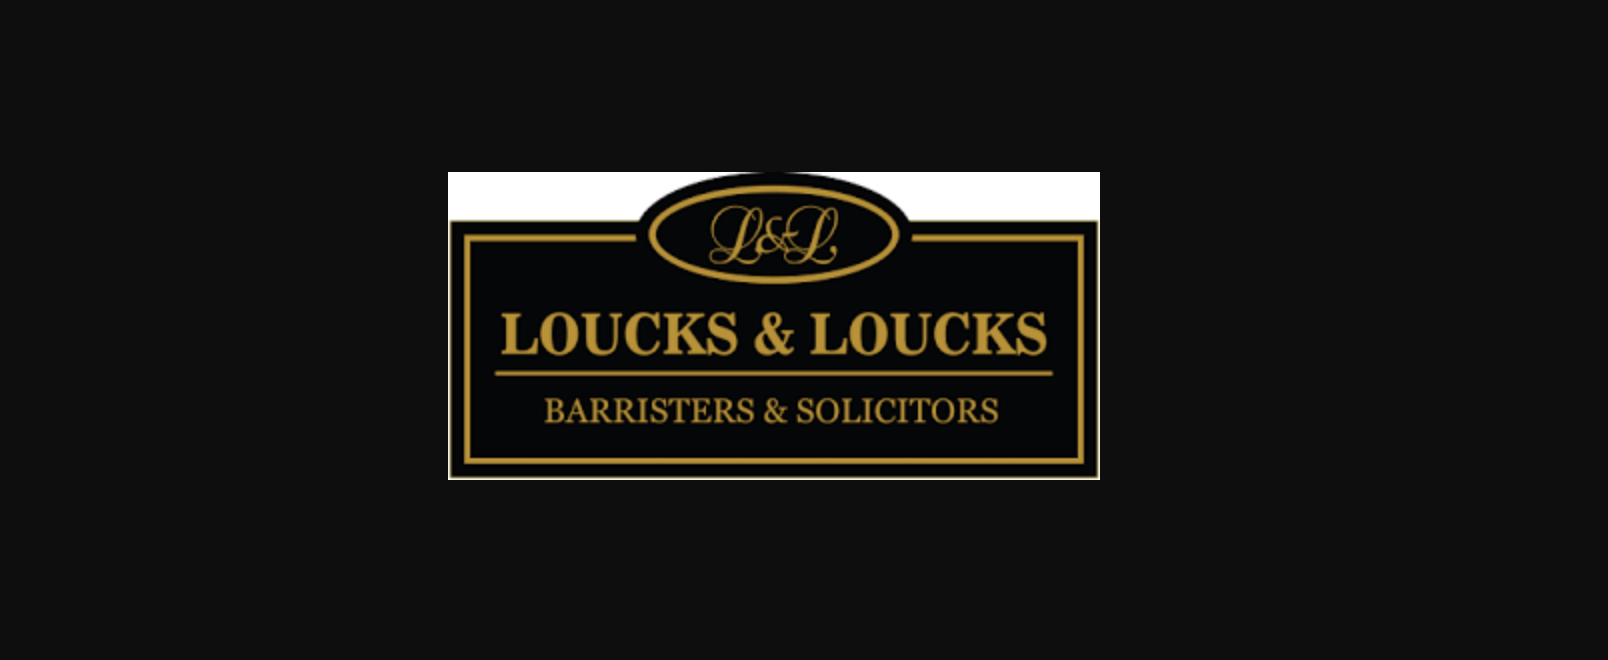 Loucks & Loucks Barristers & Solicitors